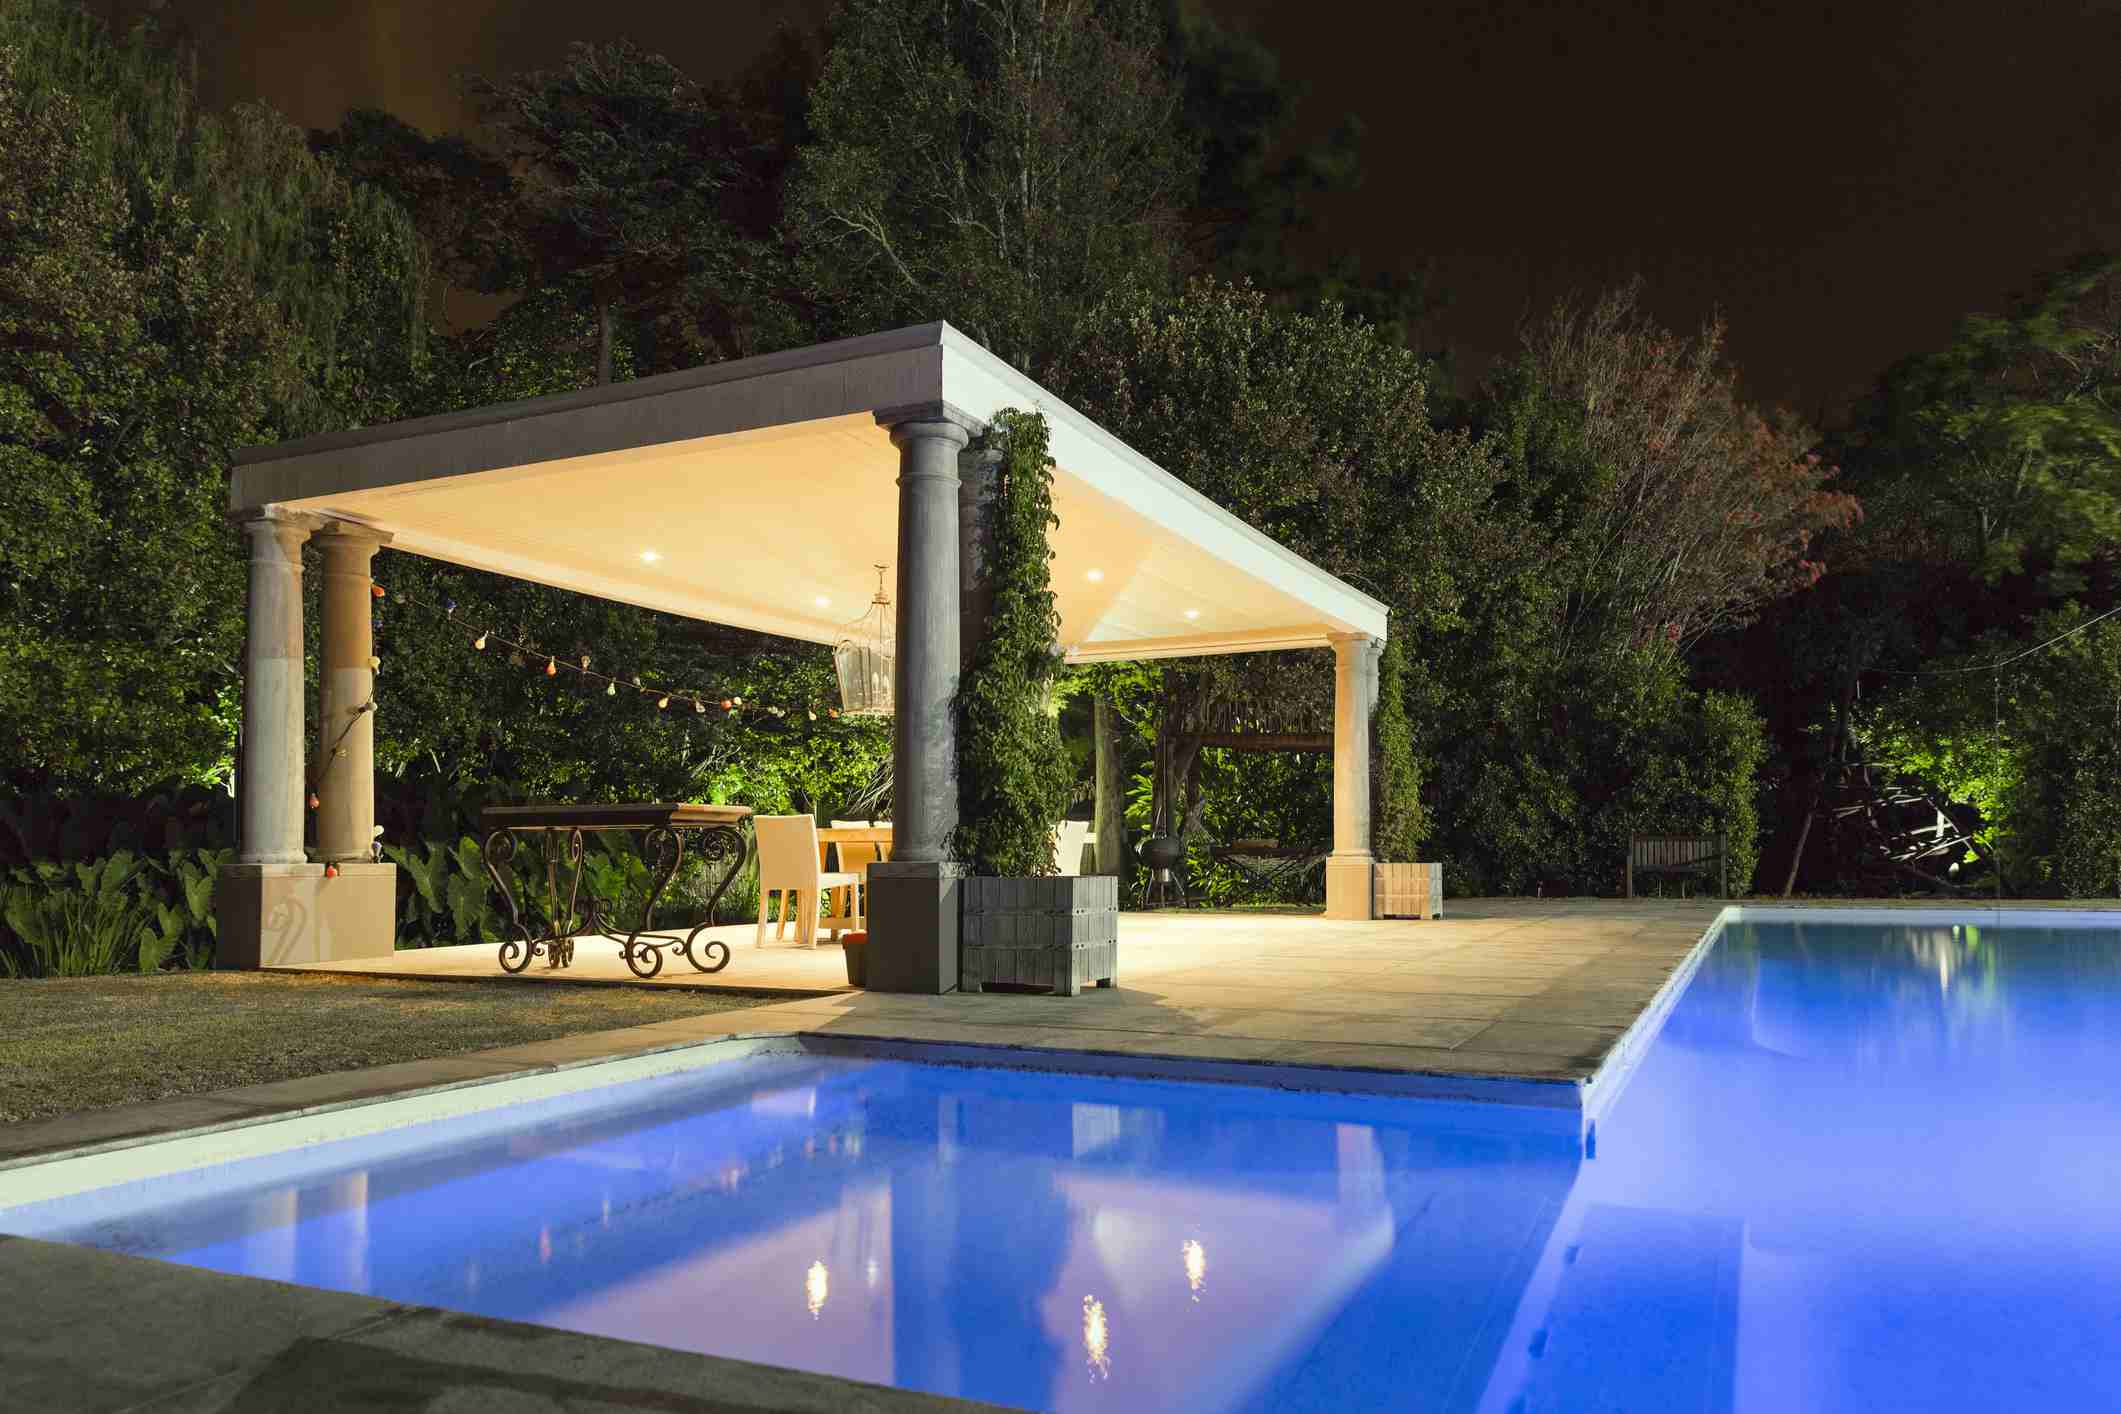 Patio with pool and pergola.